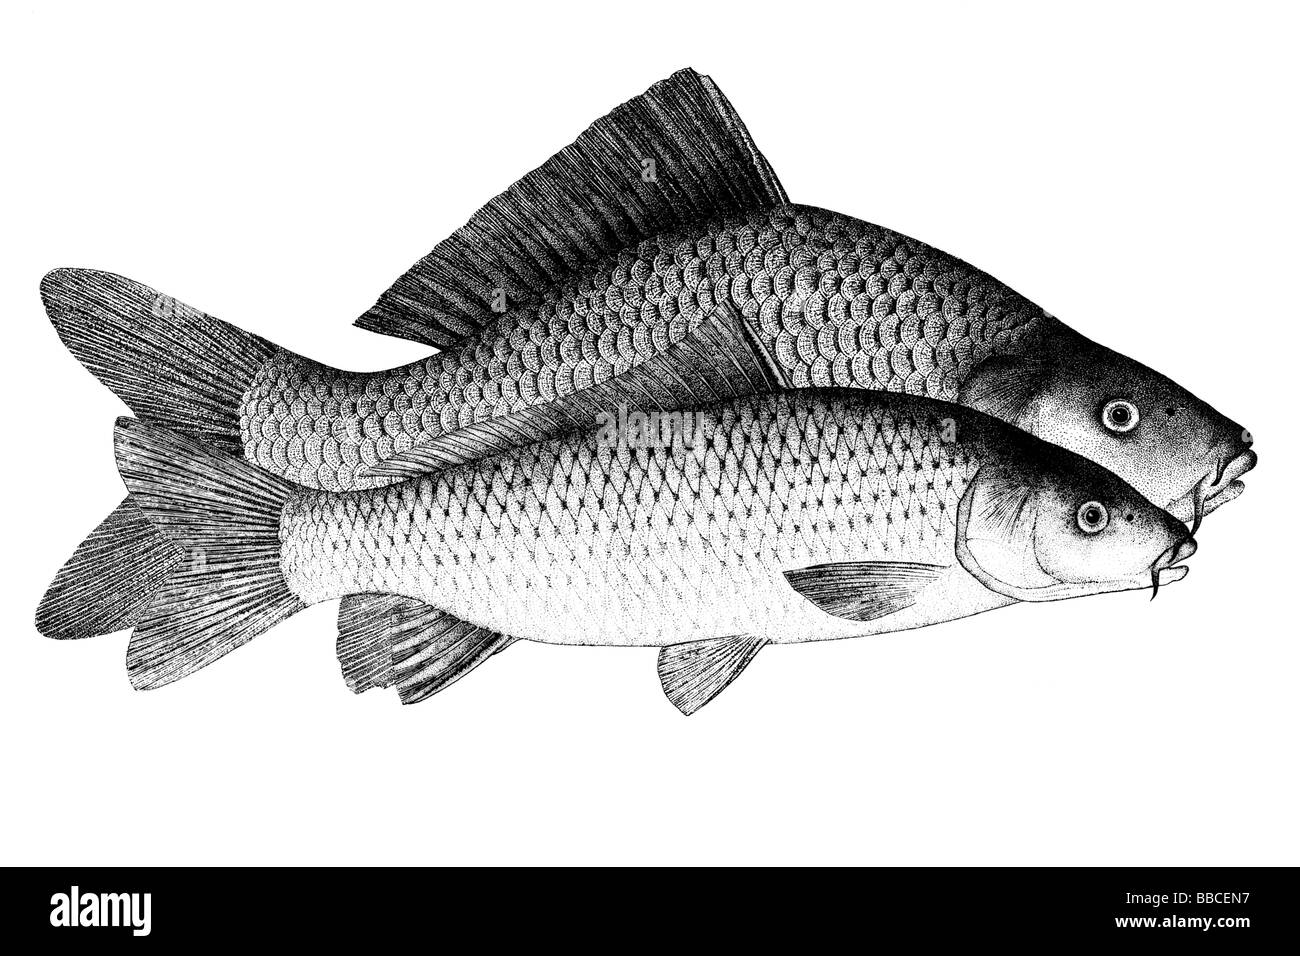 Common Carp, European Carp (Cyprinus carpio), cultivated form (rear) and wild form (front) - Stock Image